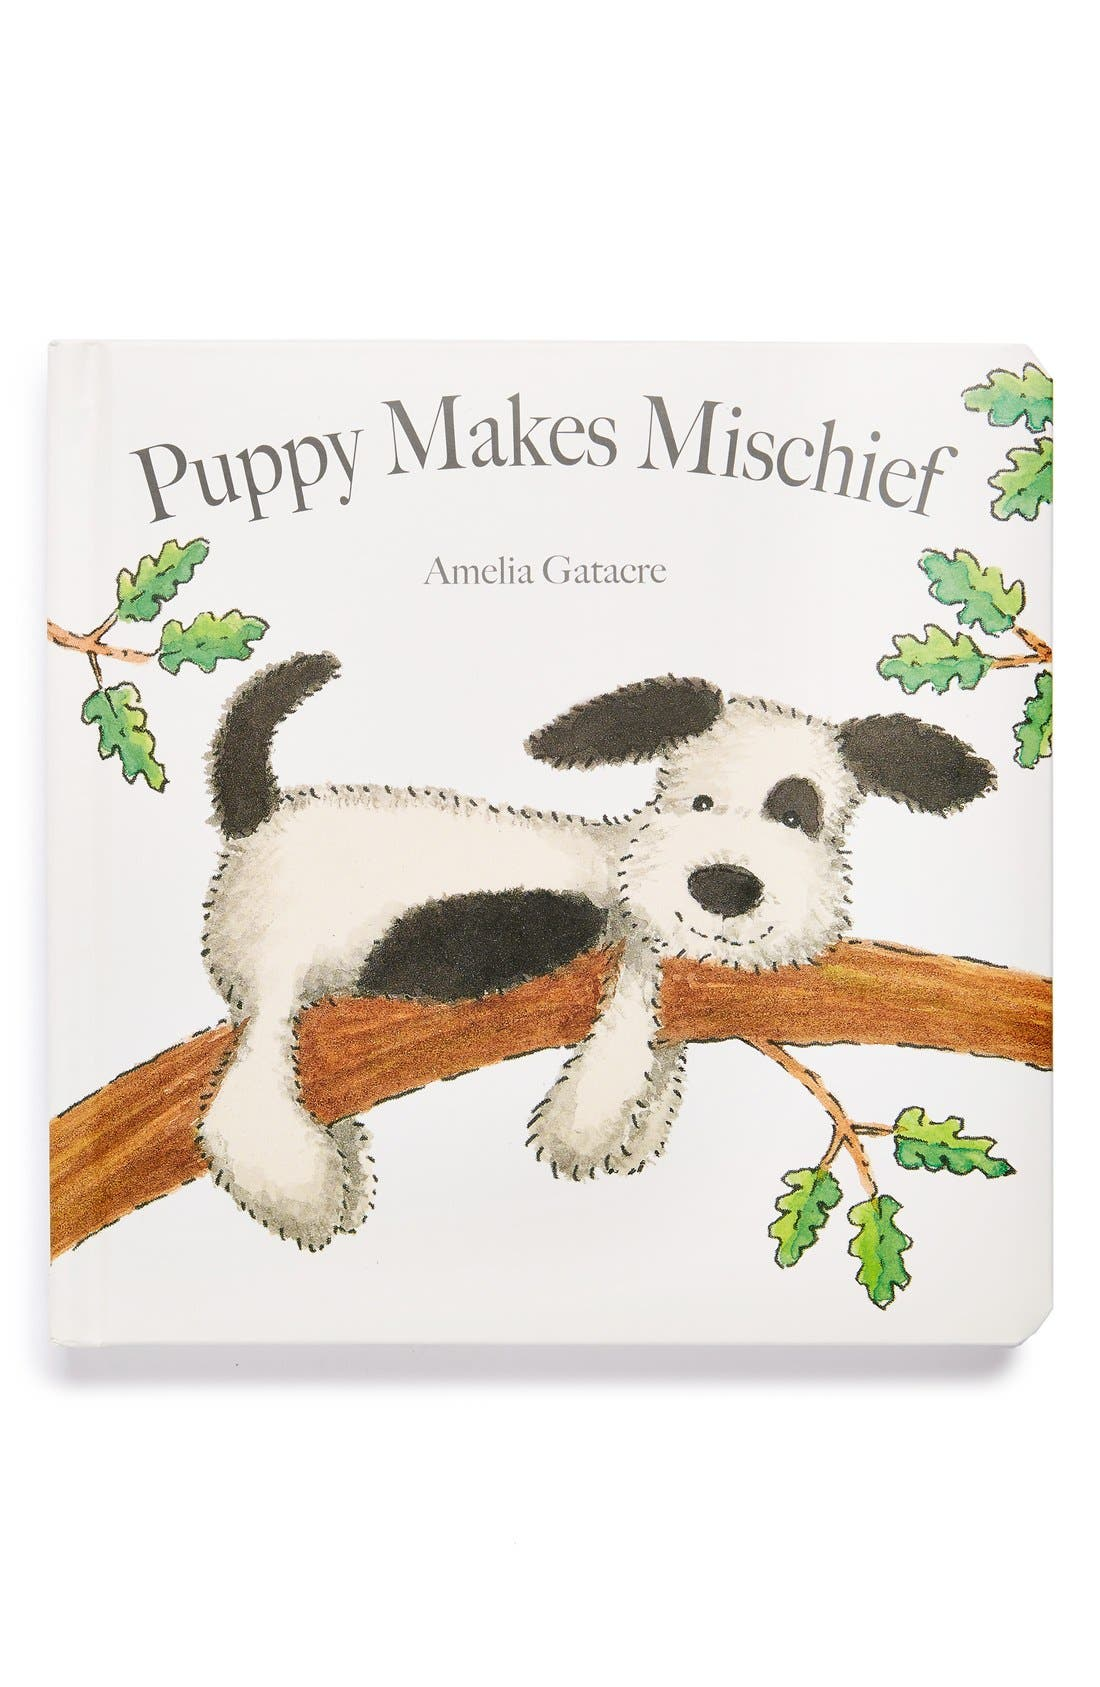 Alternate Image 1 Selected - 'Puppy Makes Mischief' Board Book